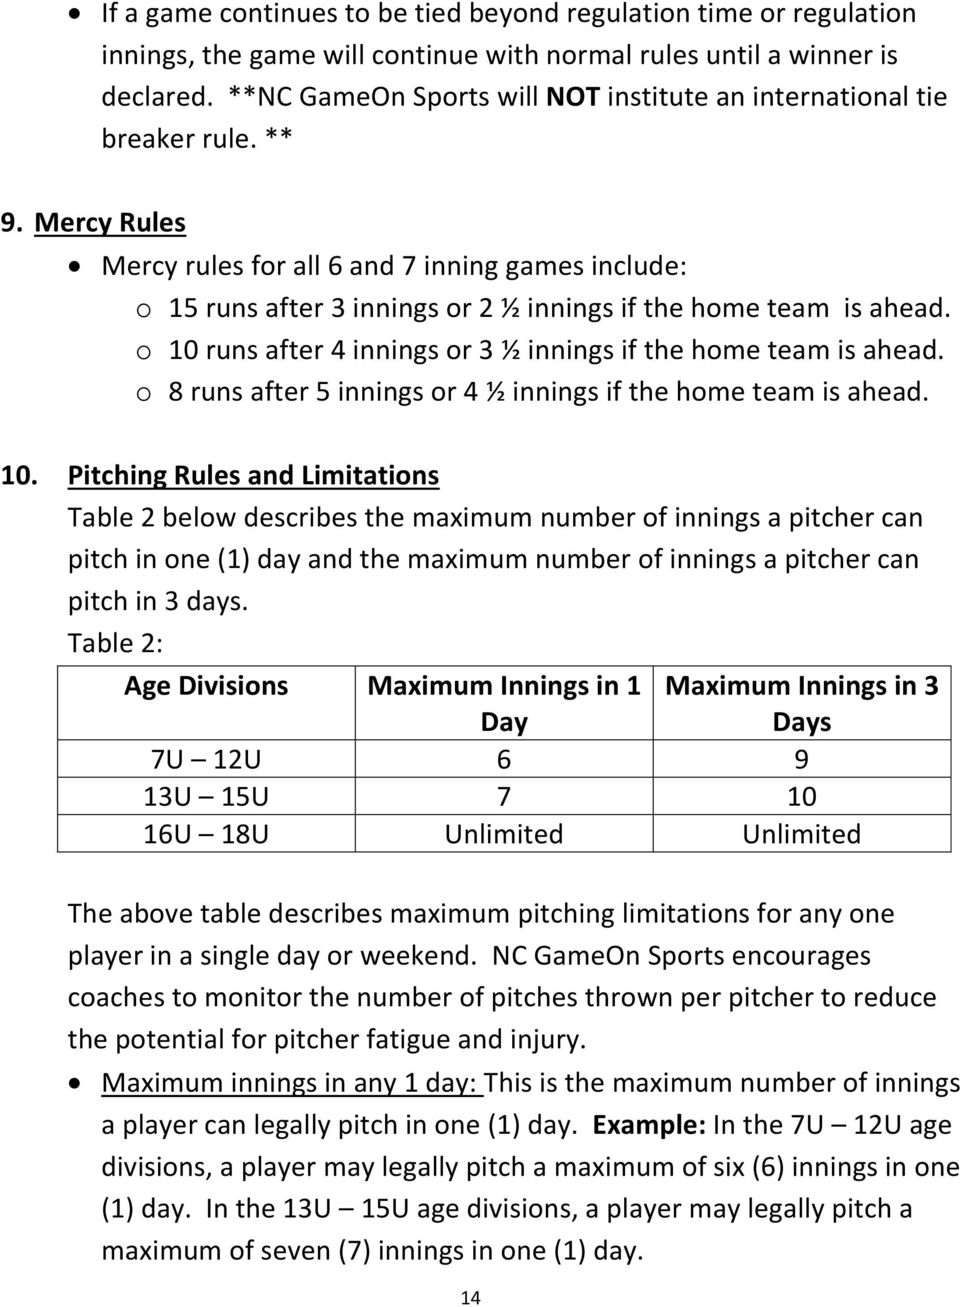 Mercy Rules Mercy rules for all 6 and 7 inning games include: o 15 runs after 3 innings or 2 ½ innings if the home team is ahead. o 10 runs after 4 innings or 3 ½ innings if the home team is ahead.